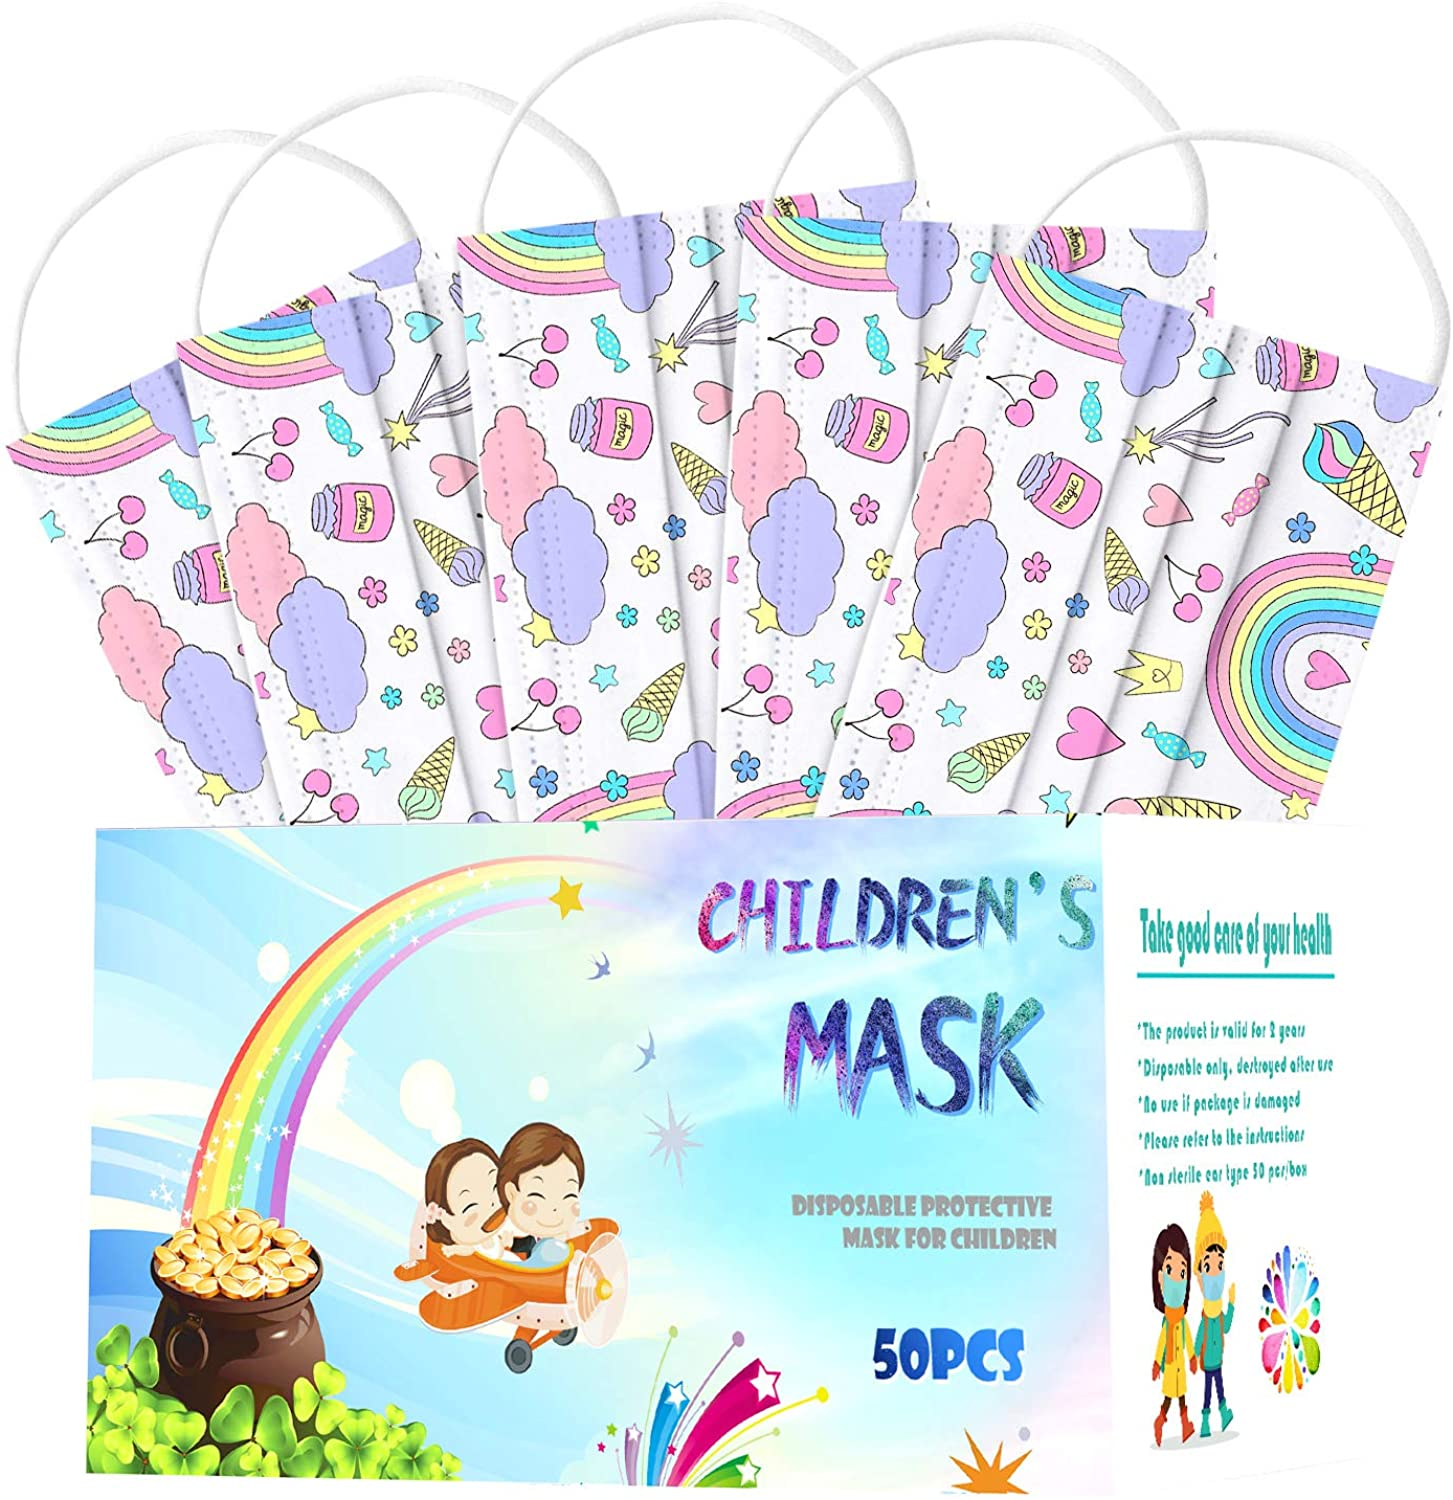 AIHOU 50PCS Kids Disposable Christmas Face Mask Childrens 3Ply Earloop Comfortable Breathable Protective Mask Festival Party